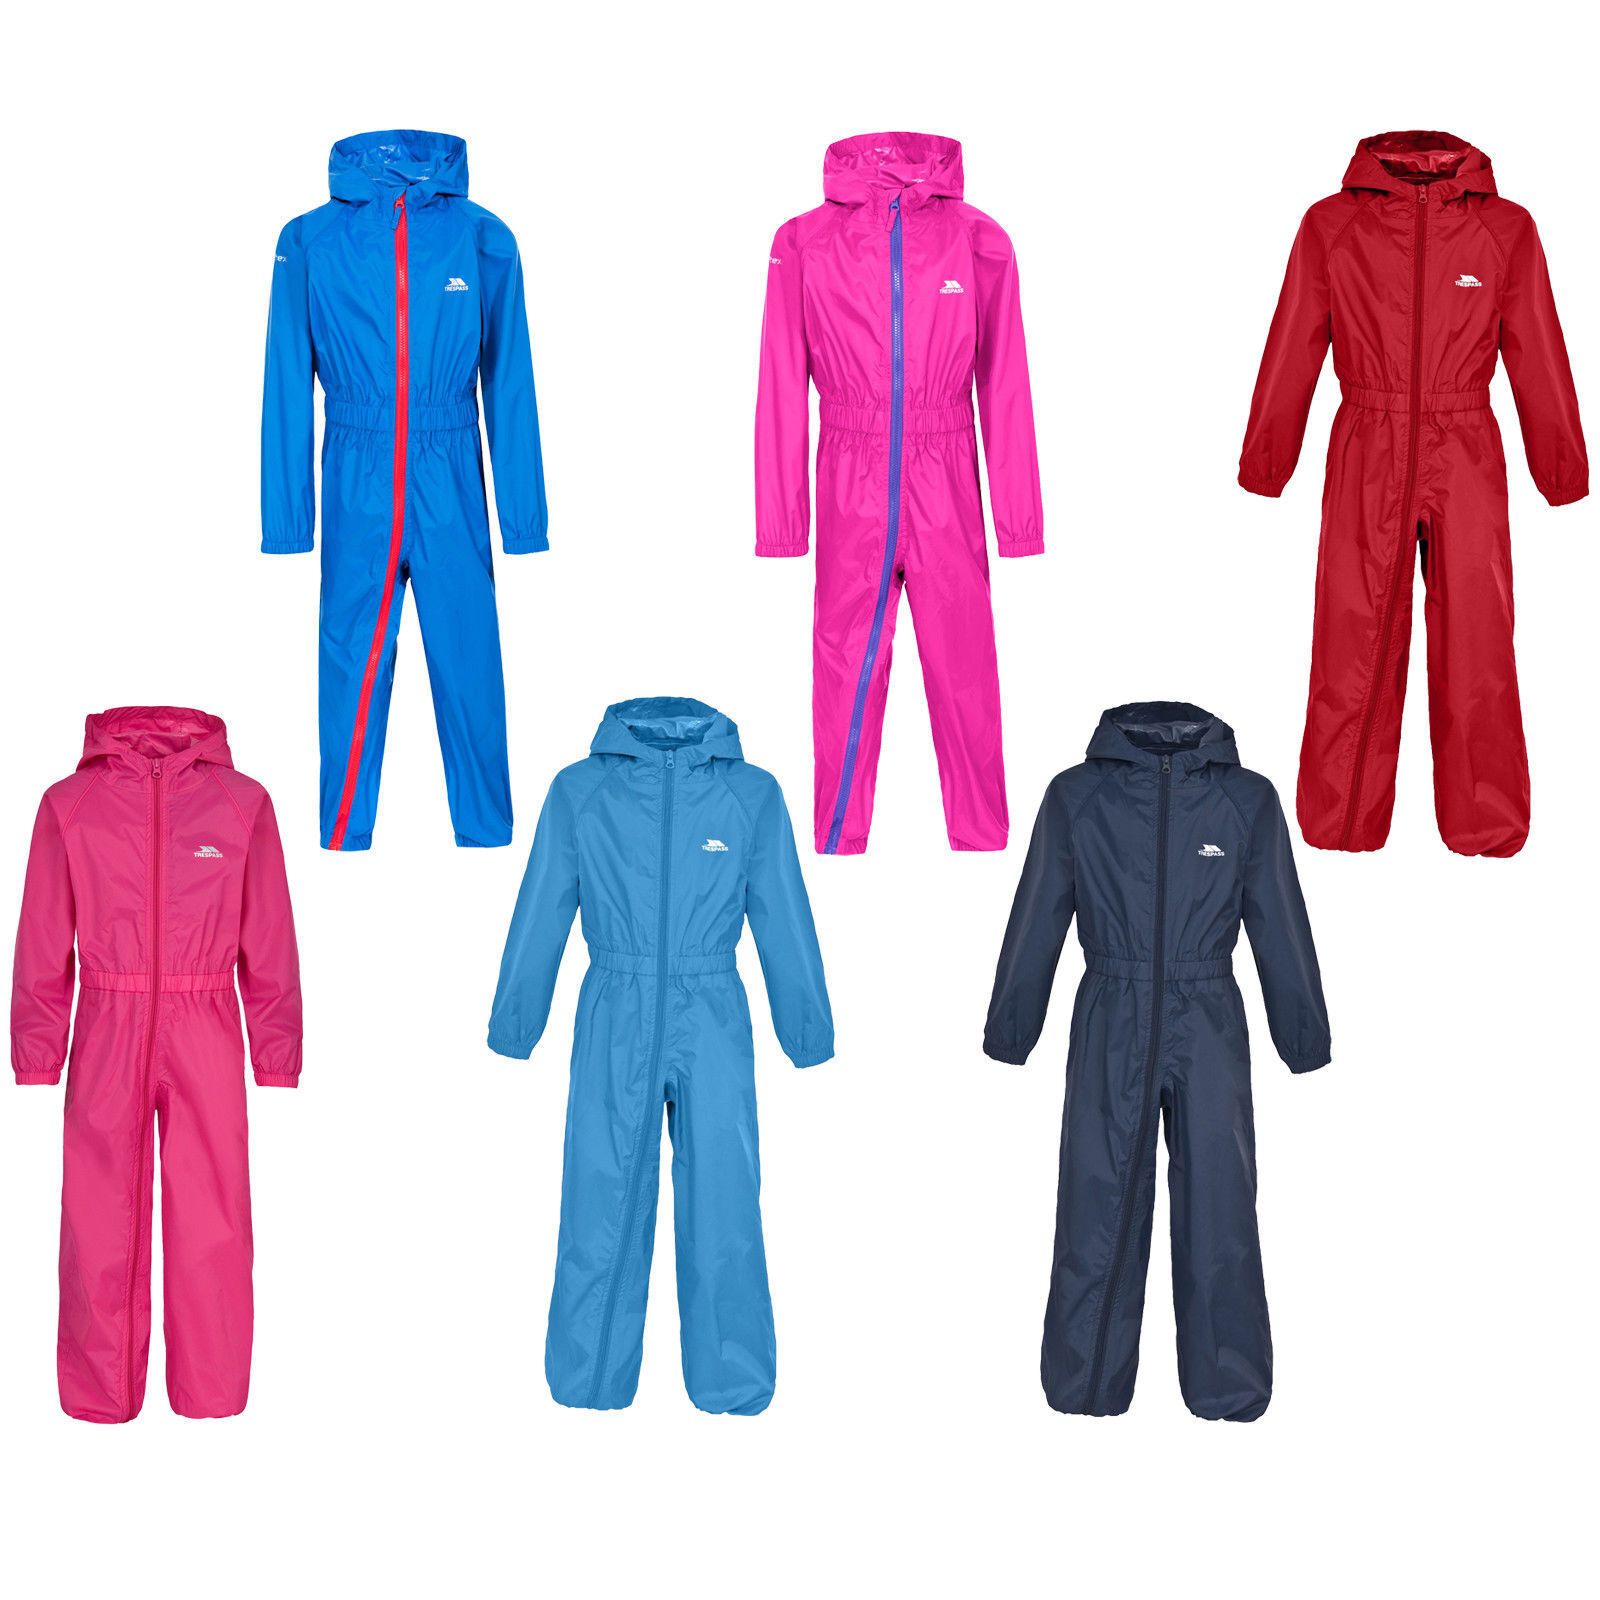 Waterproof Rainsuit 5-6 Yrs Bright Red DRY KIDS